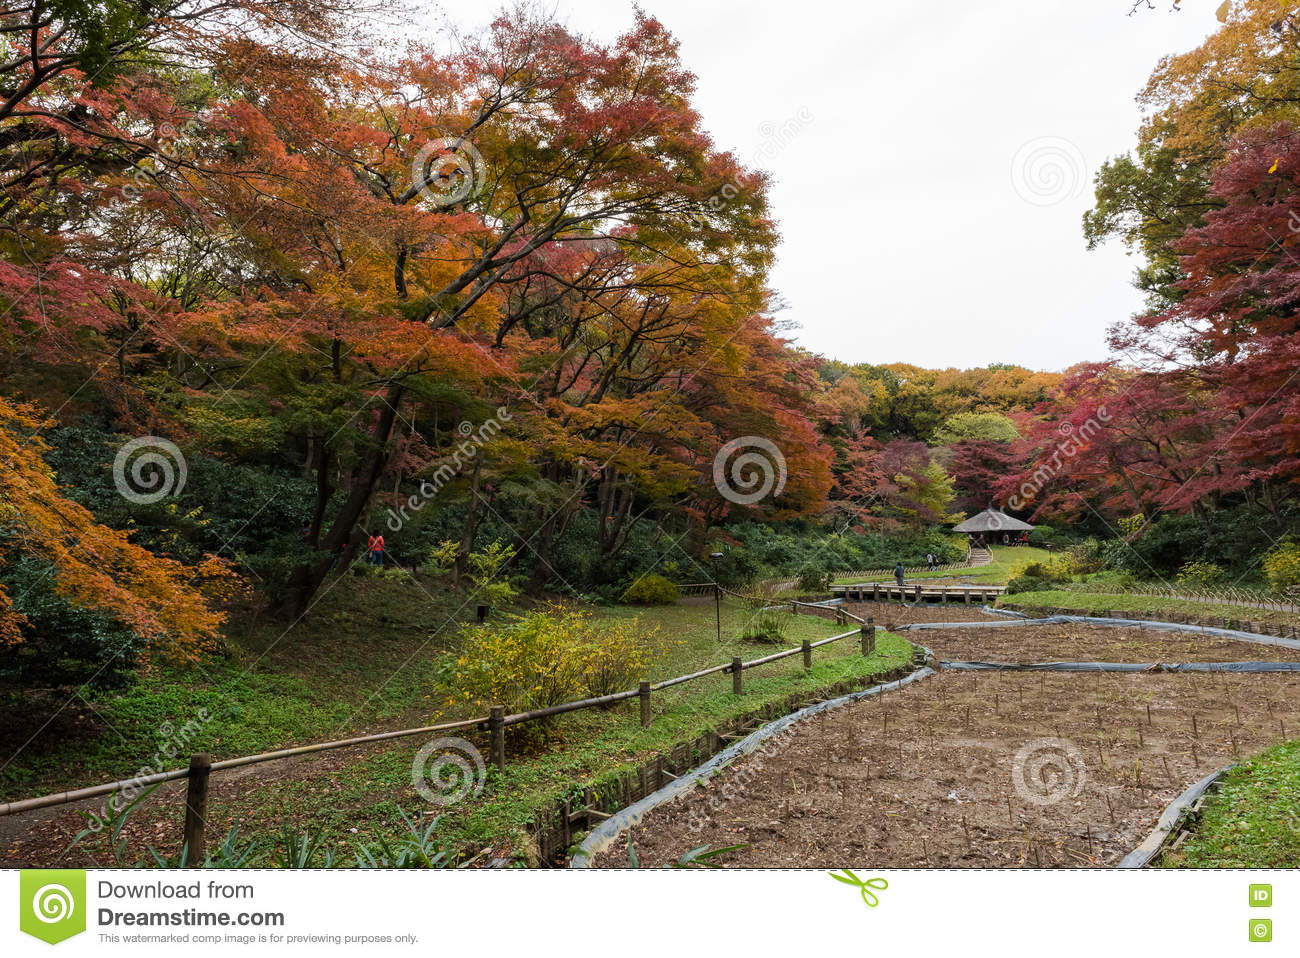 Inner Gardens At Meiji Jingu Located In Shibuya, Tokyo, Japan Stock ...